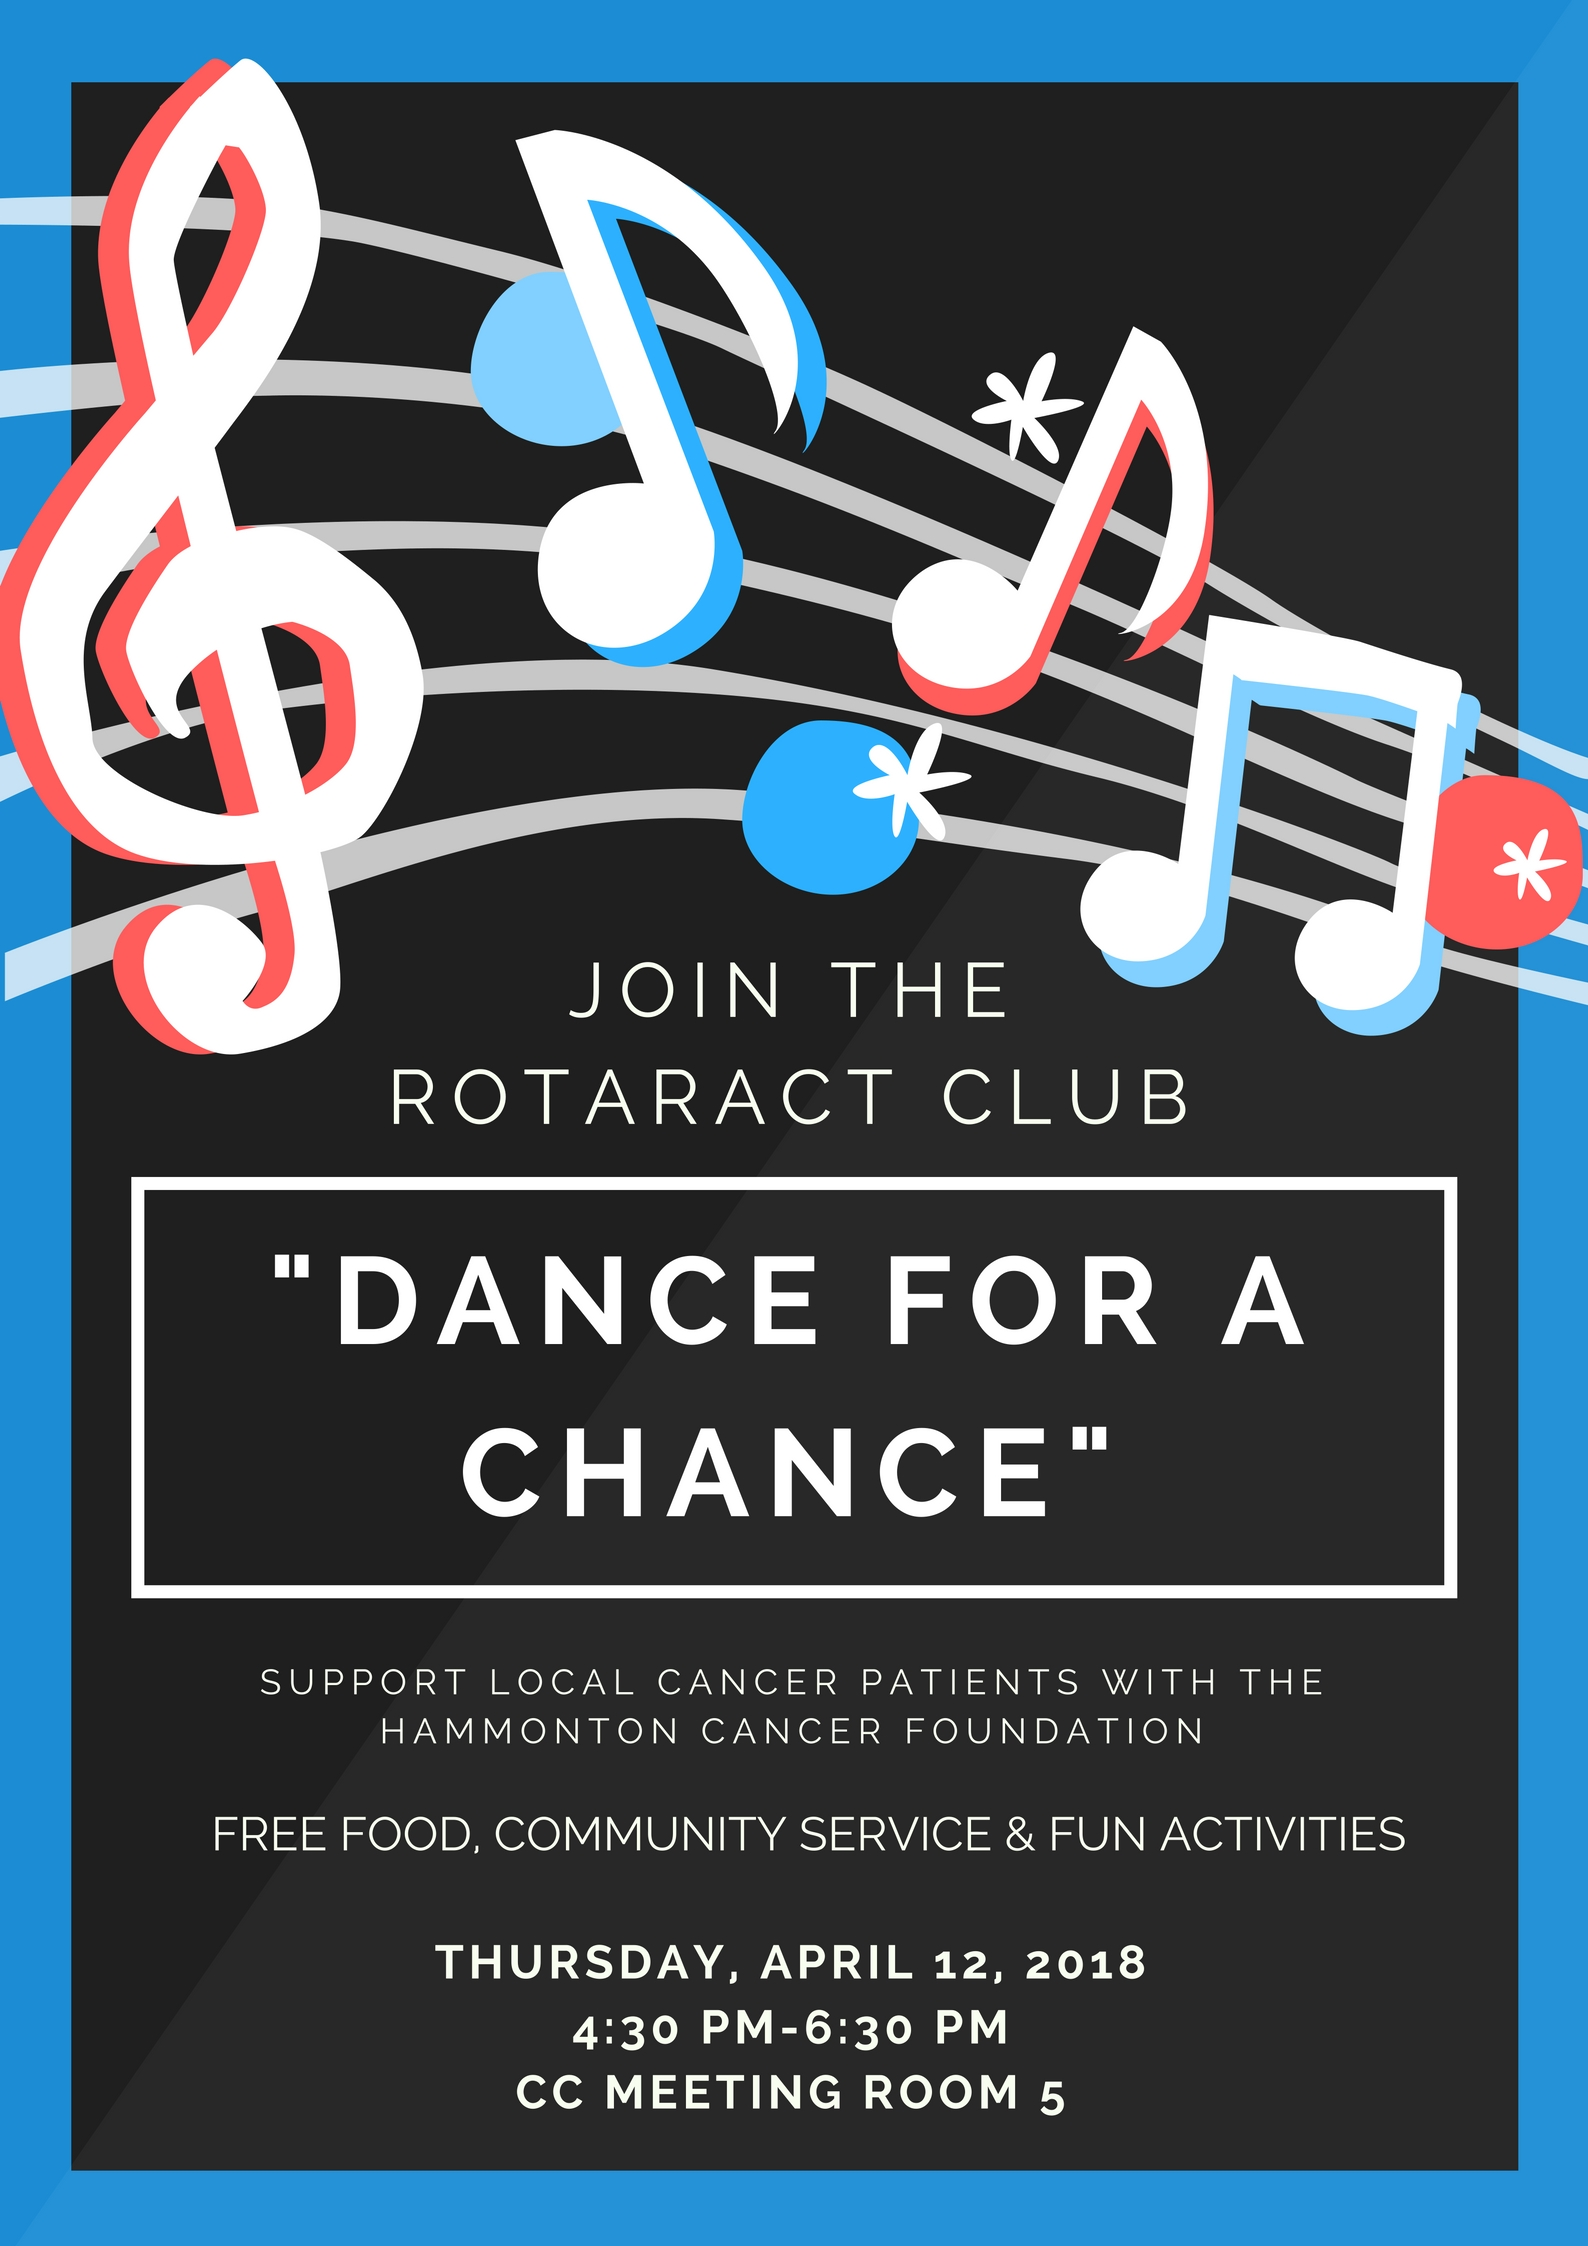 Rotaract Dance for a Chance